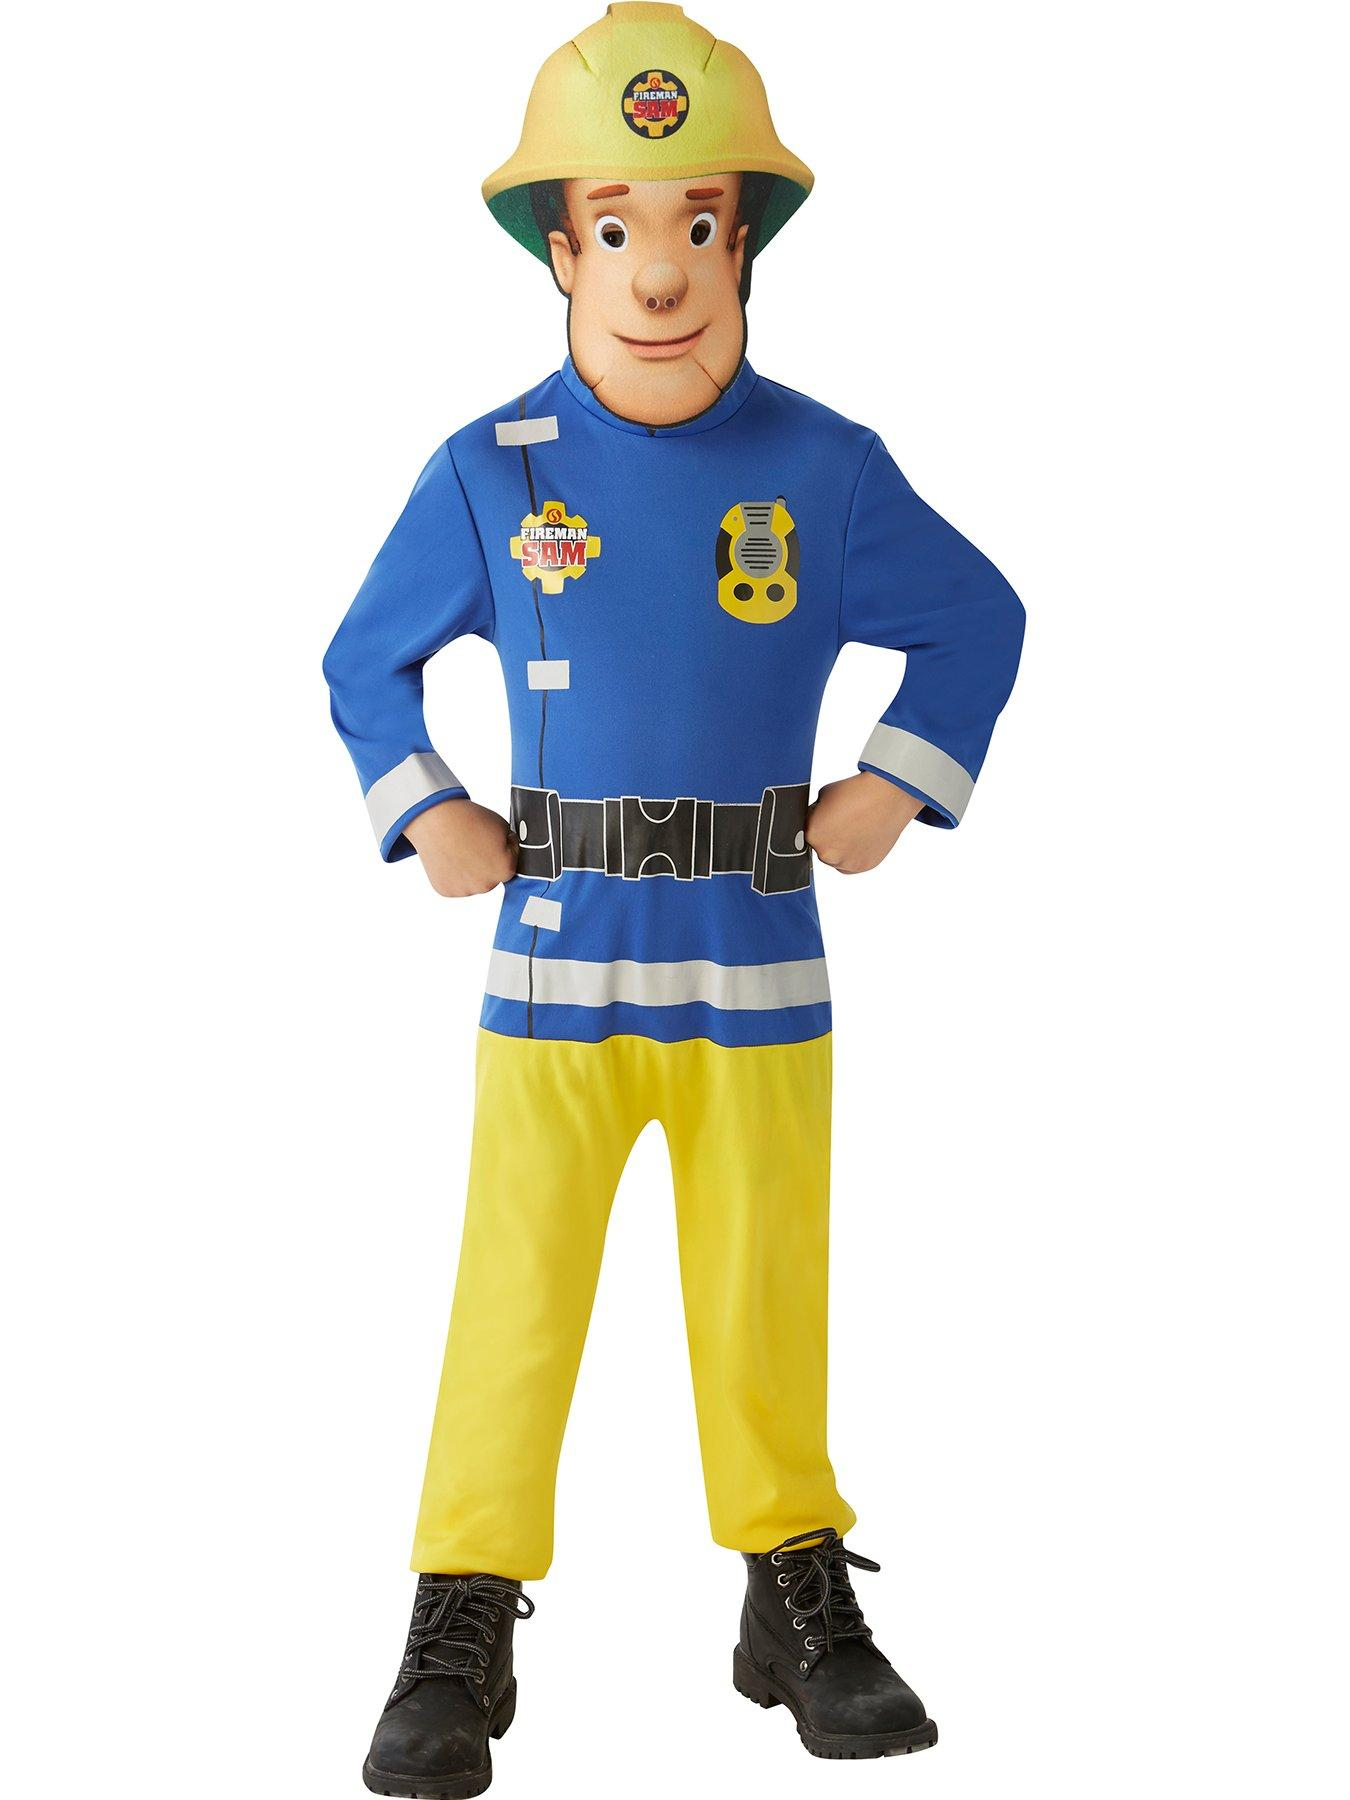 Compare prices for Fireman Sam Childs Costume